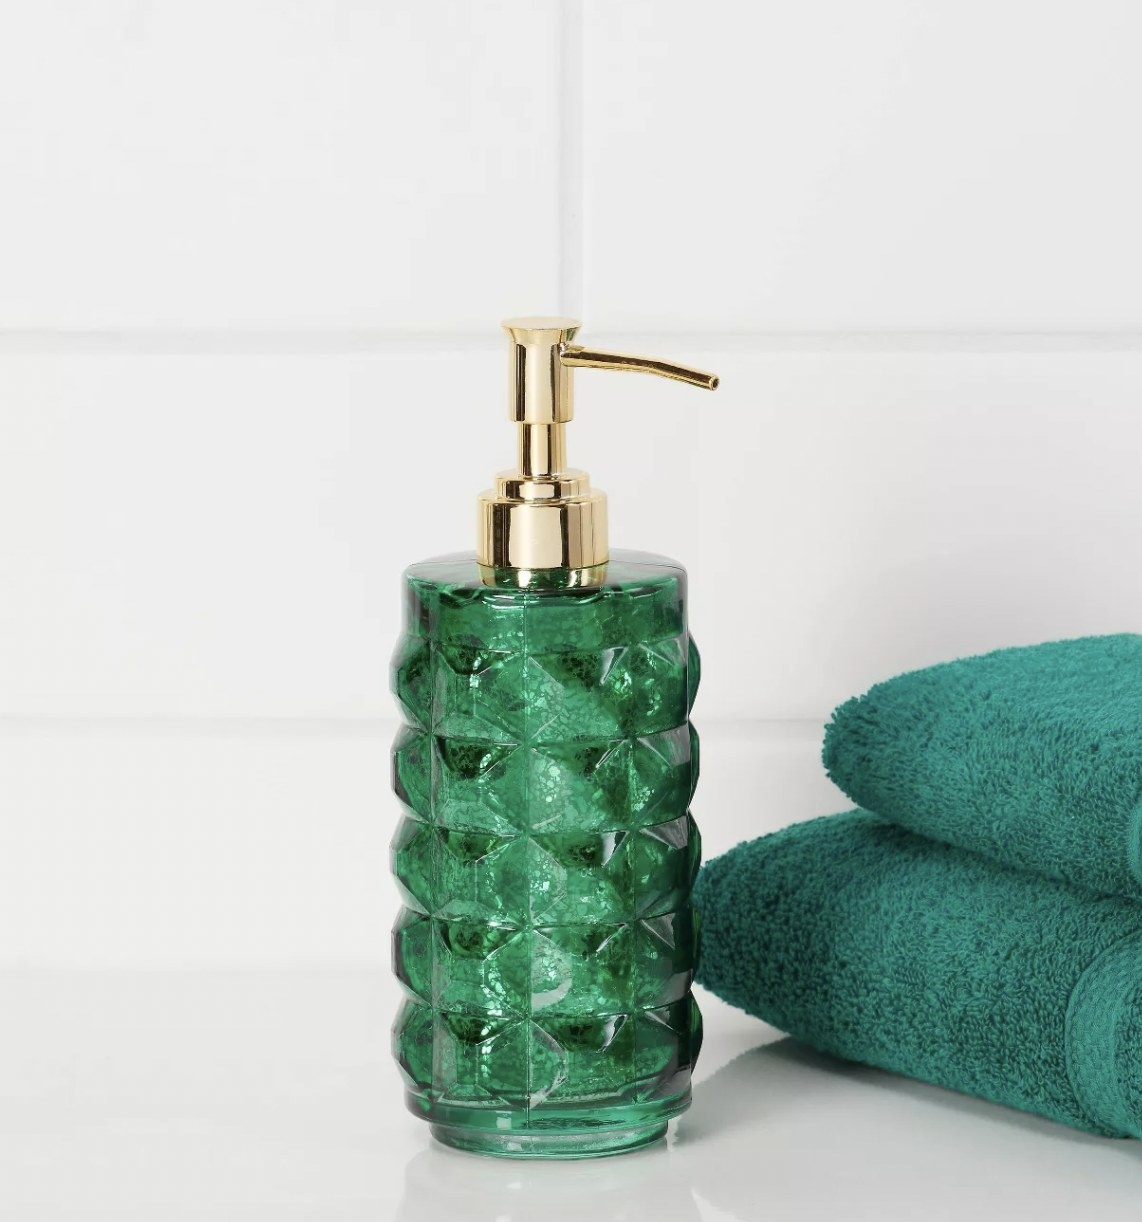 a green glass soap dispenser with a gold pump on a bathroom counter